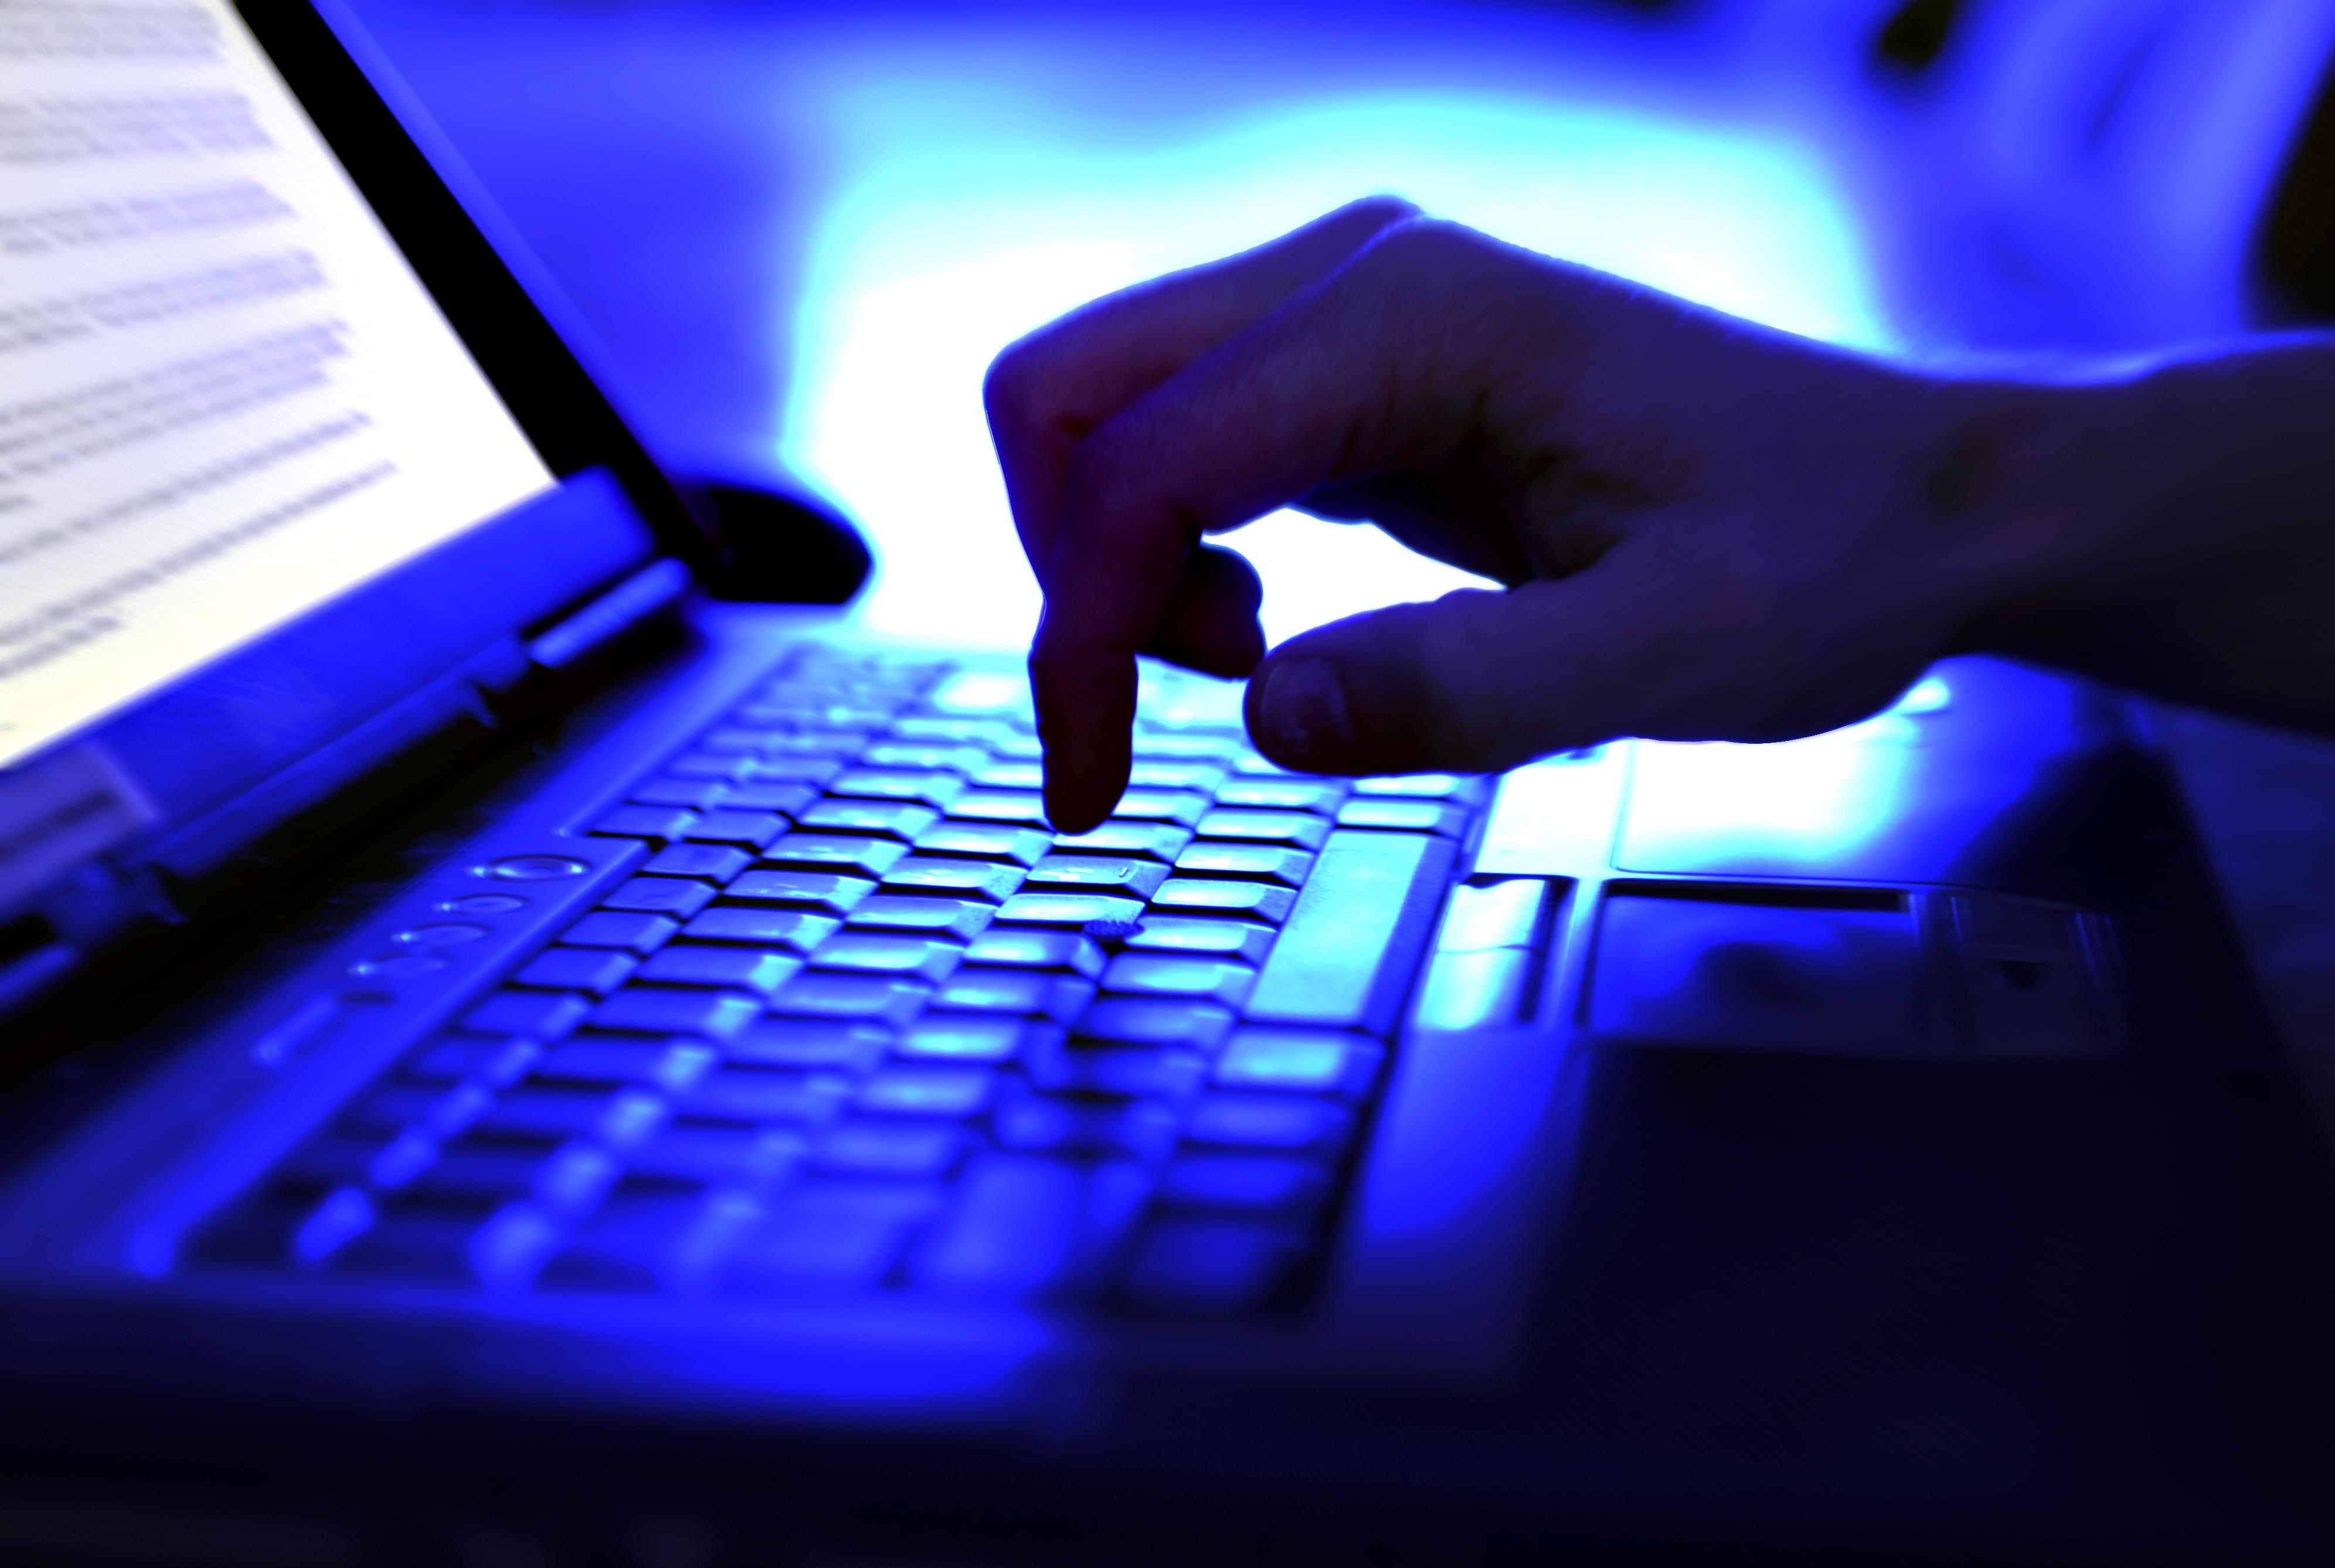 website seo - person typing on keyboard in blue-lit room